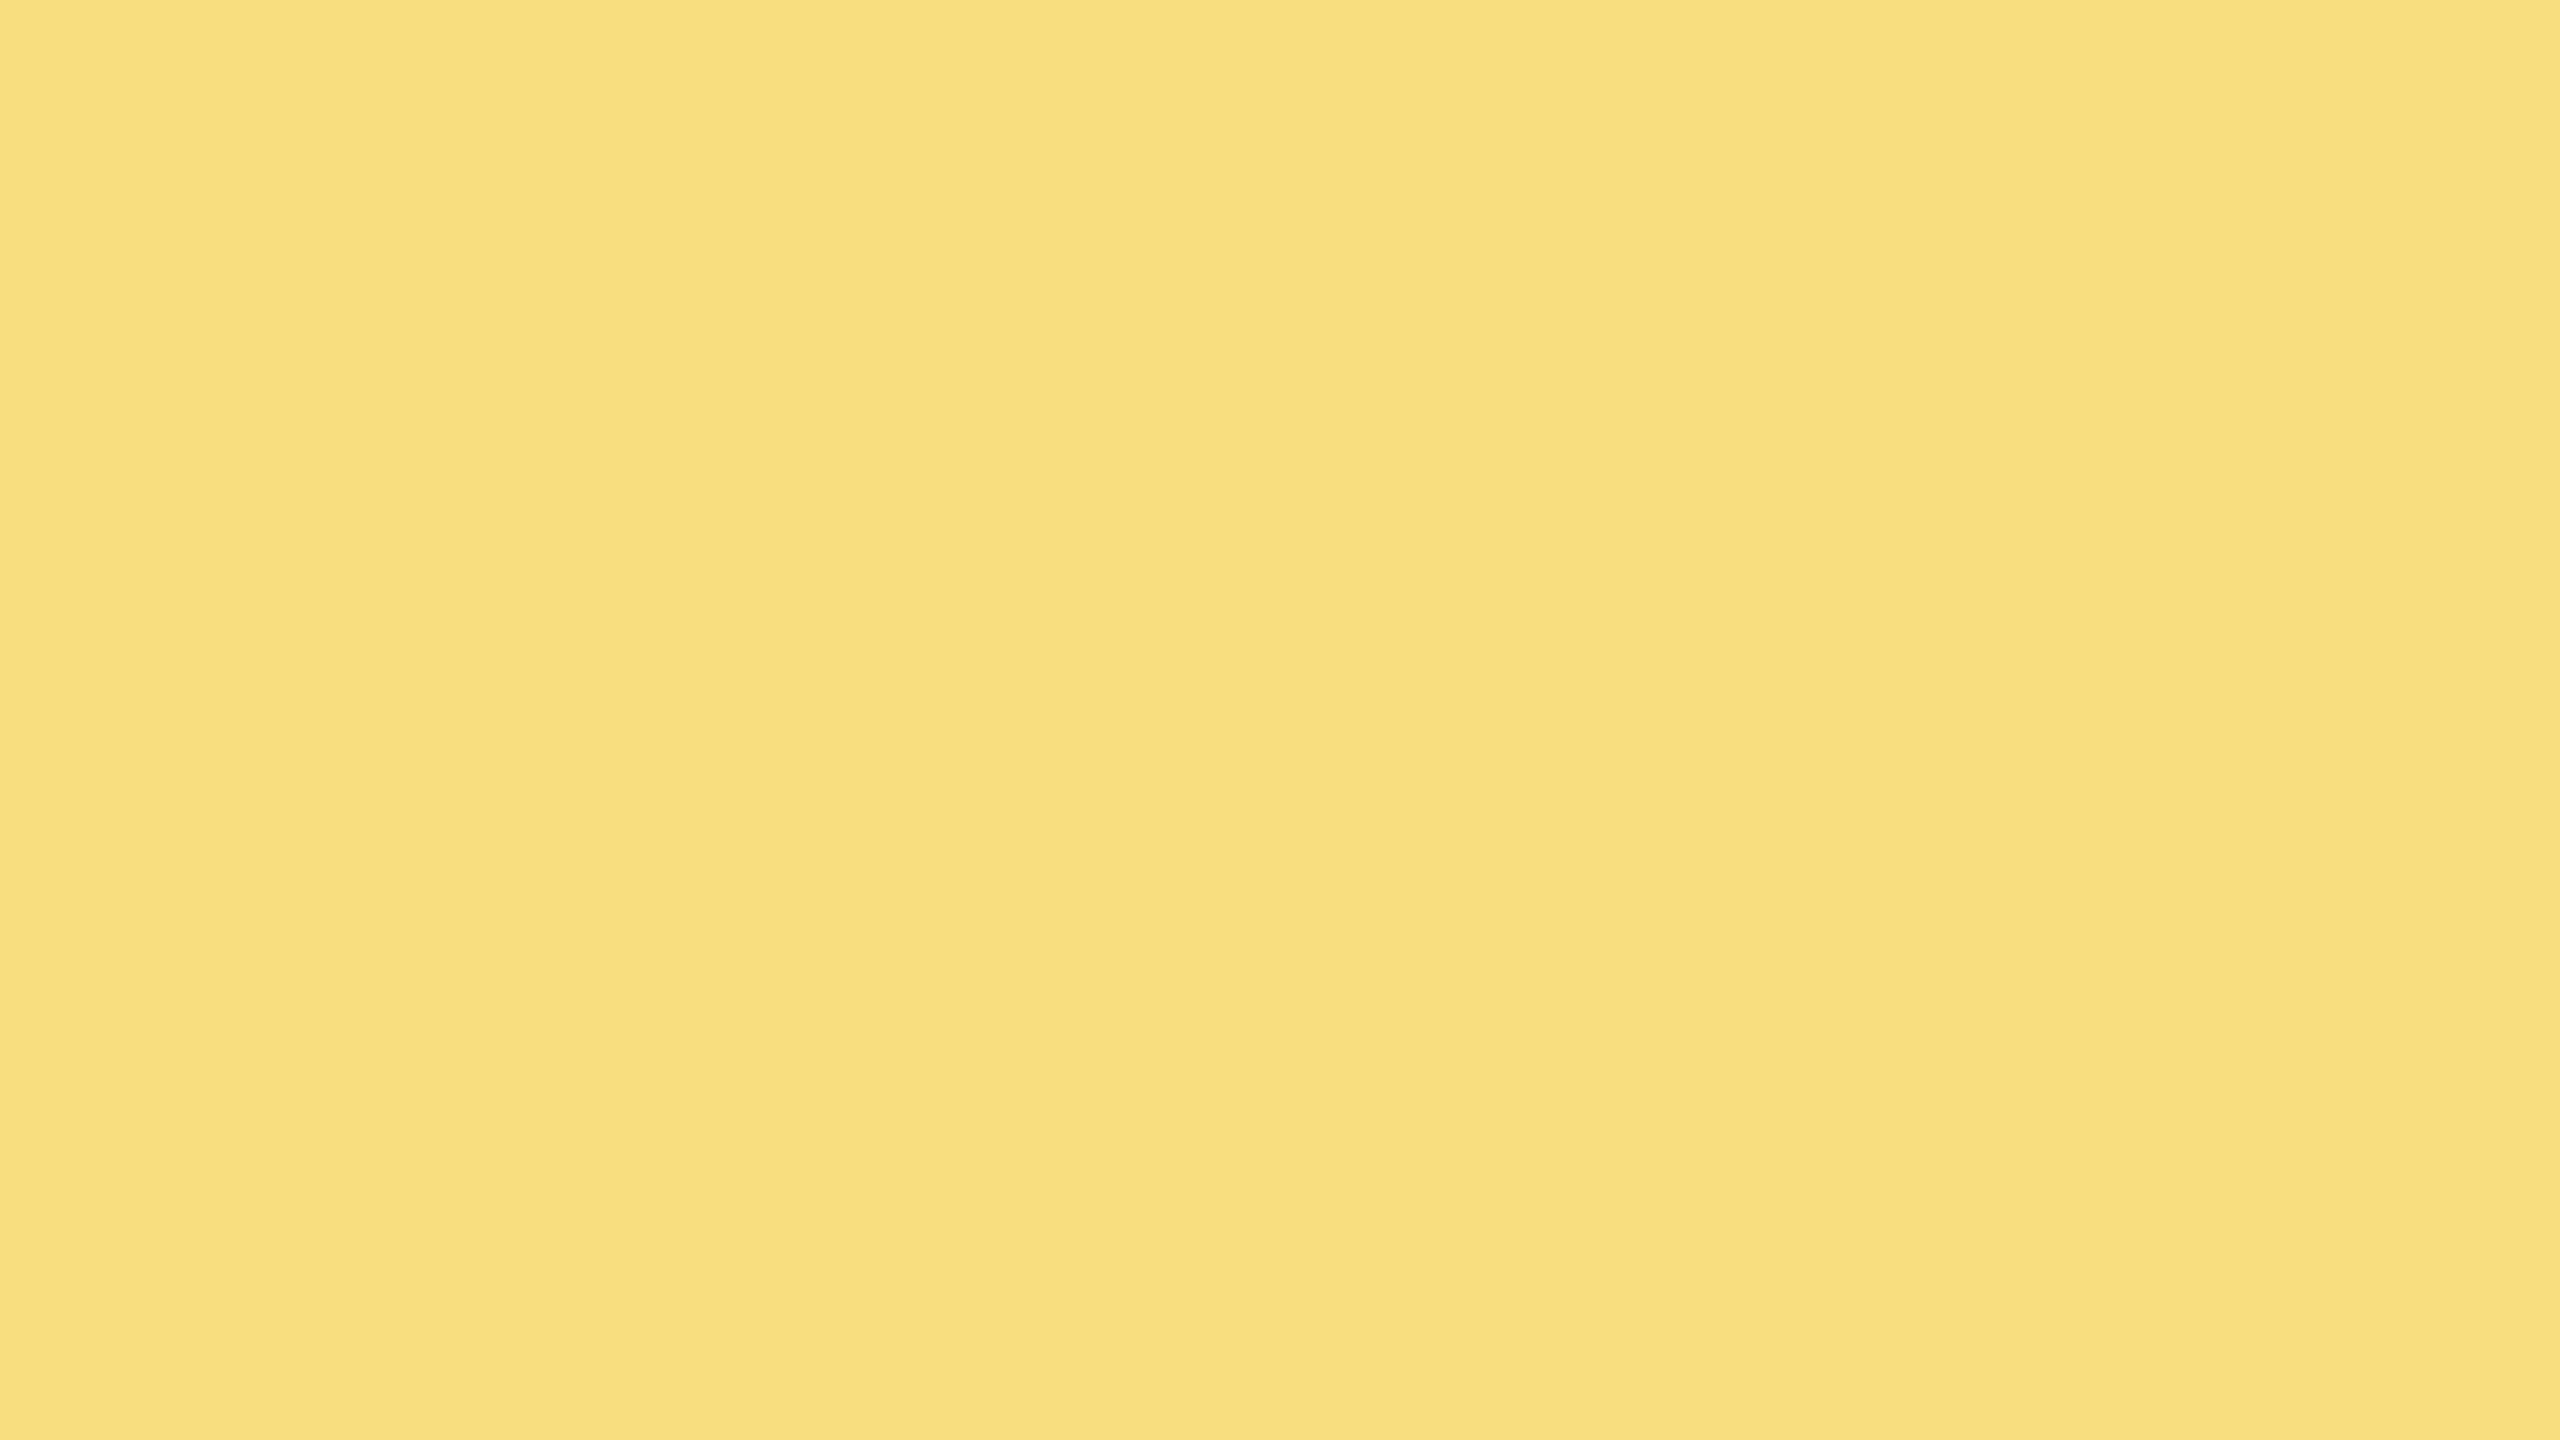 2560x1440 Mellow Yellow Solid Color Background